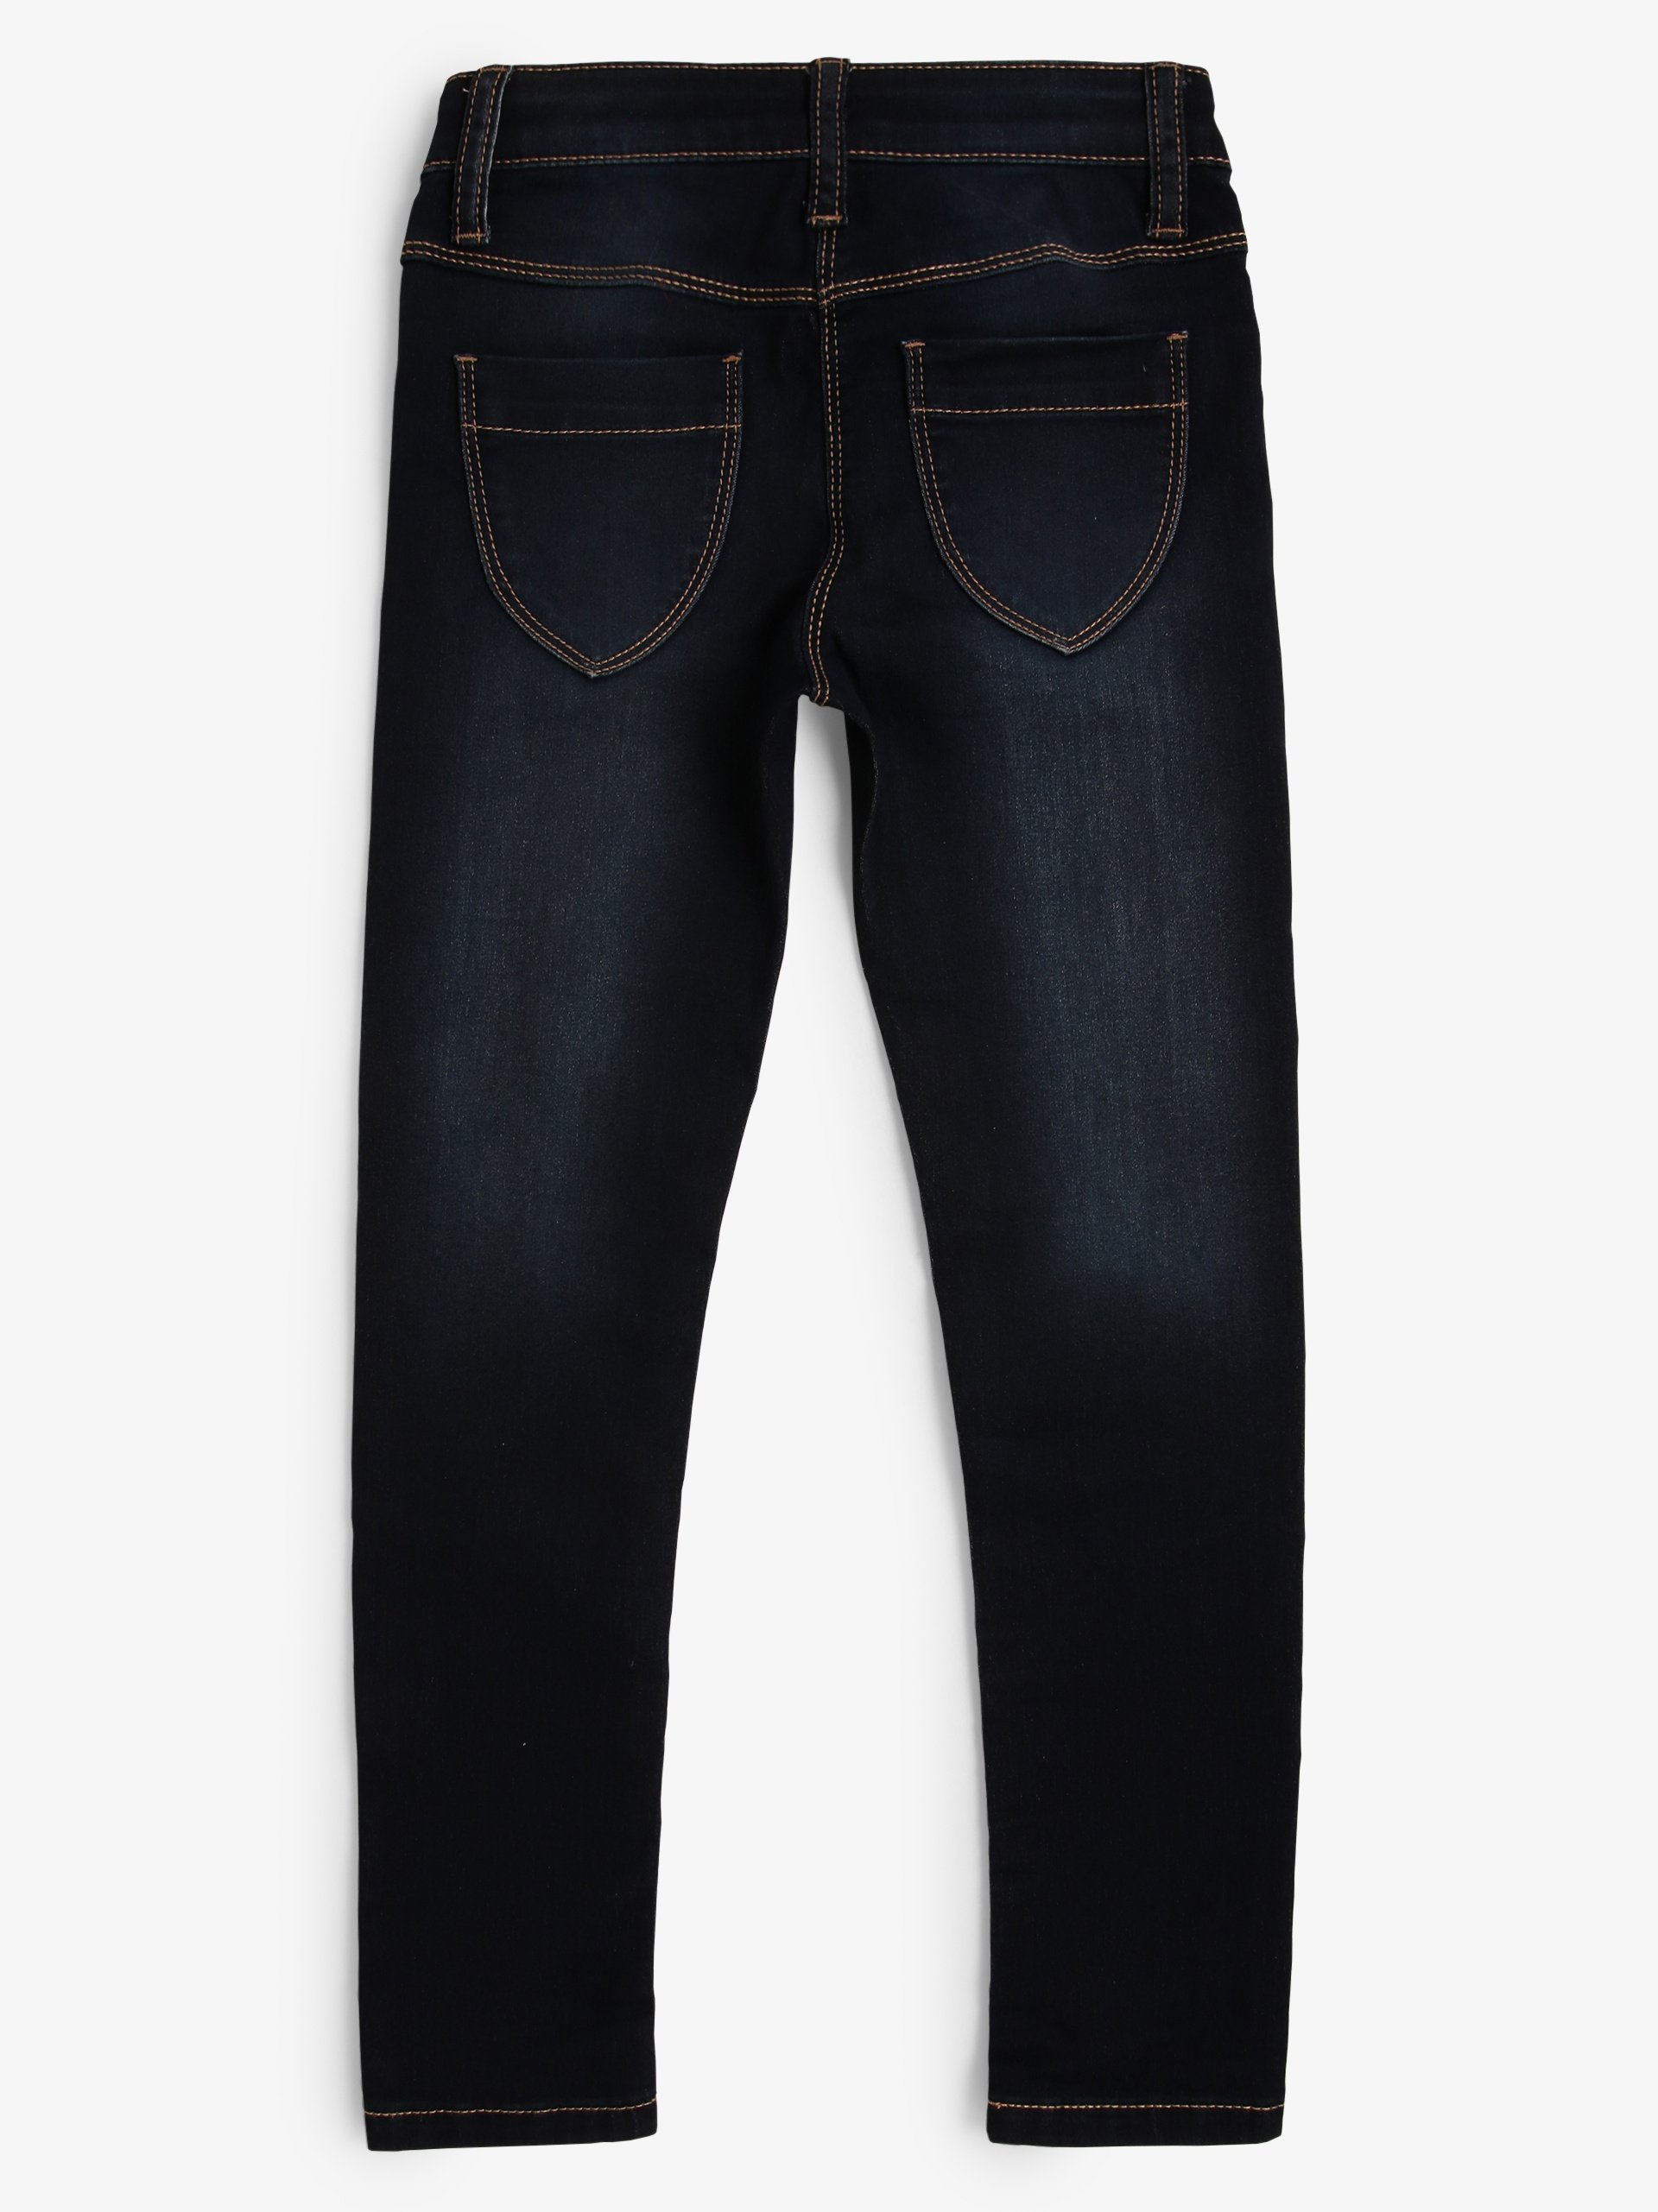 s.Oliver Casual Mädchen Jeans Skinny Fit - Kathy